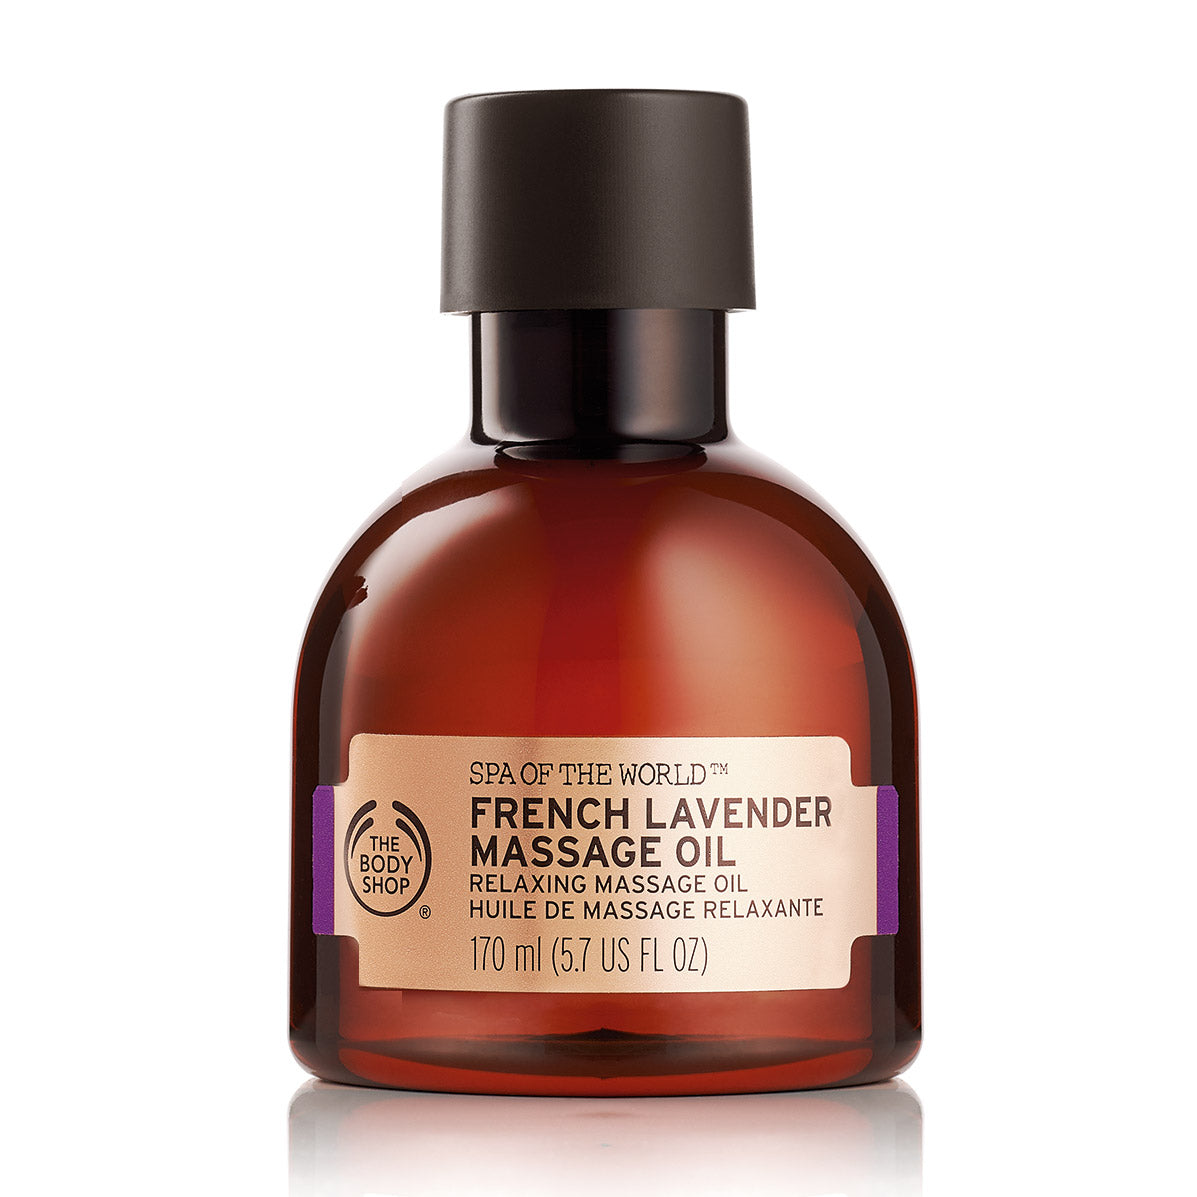 Spa of the World French Lavender Massage Oil